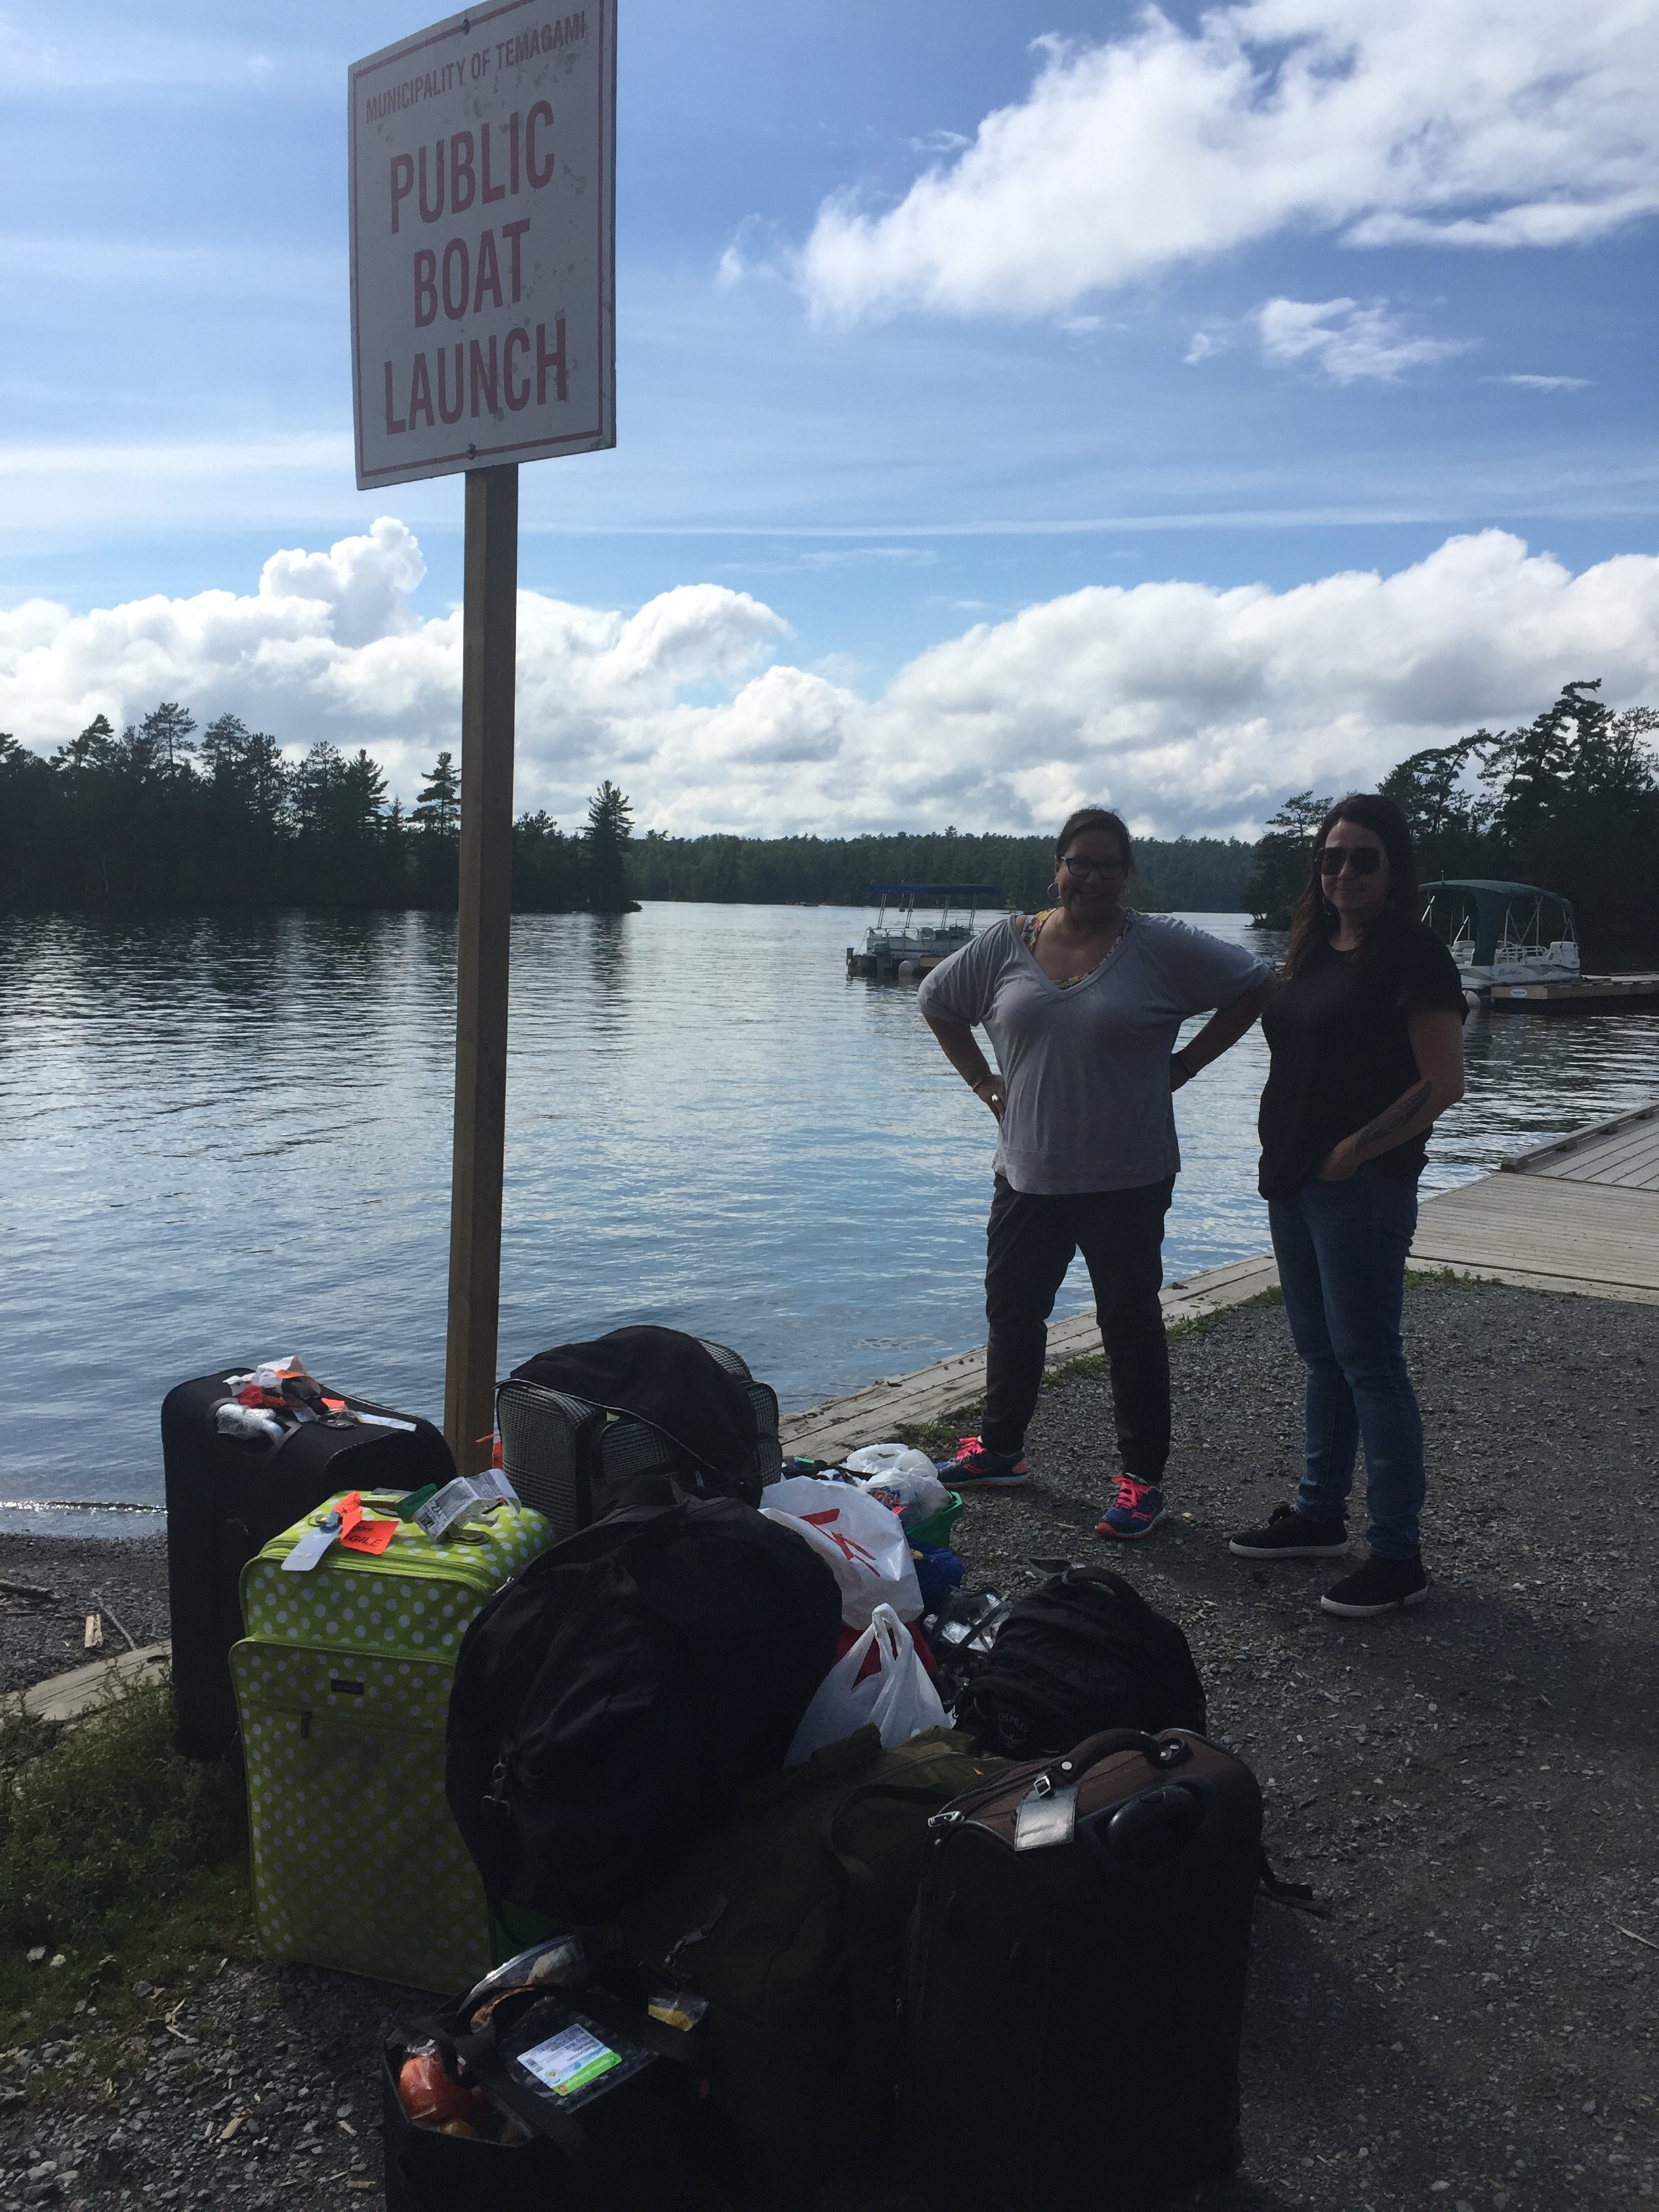 Darlene and Terril wait for the boat!